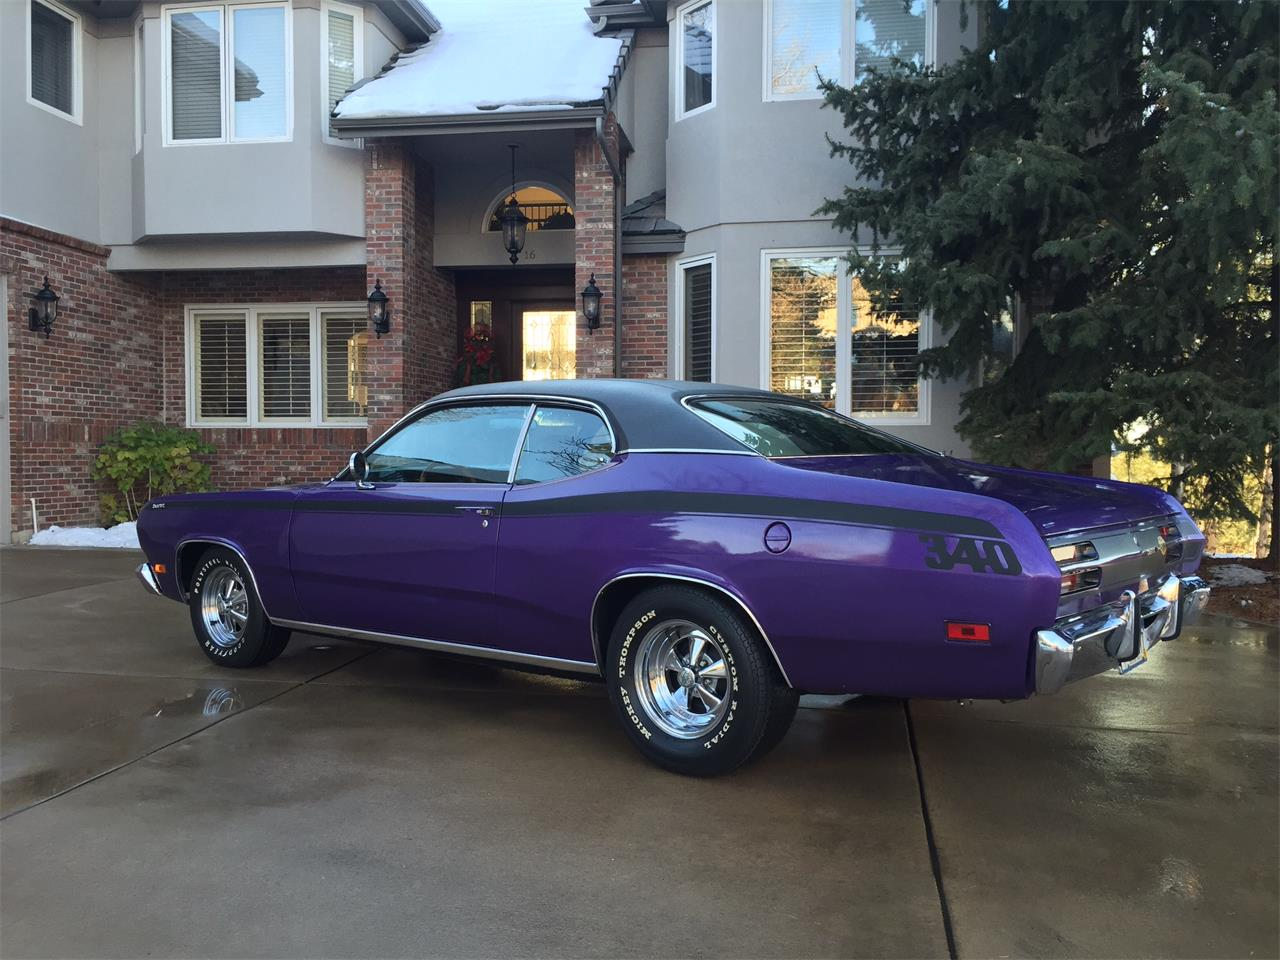 Large Picture of '71 Duster - $42,000.00 Offered by a Private Seller - OBZ1